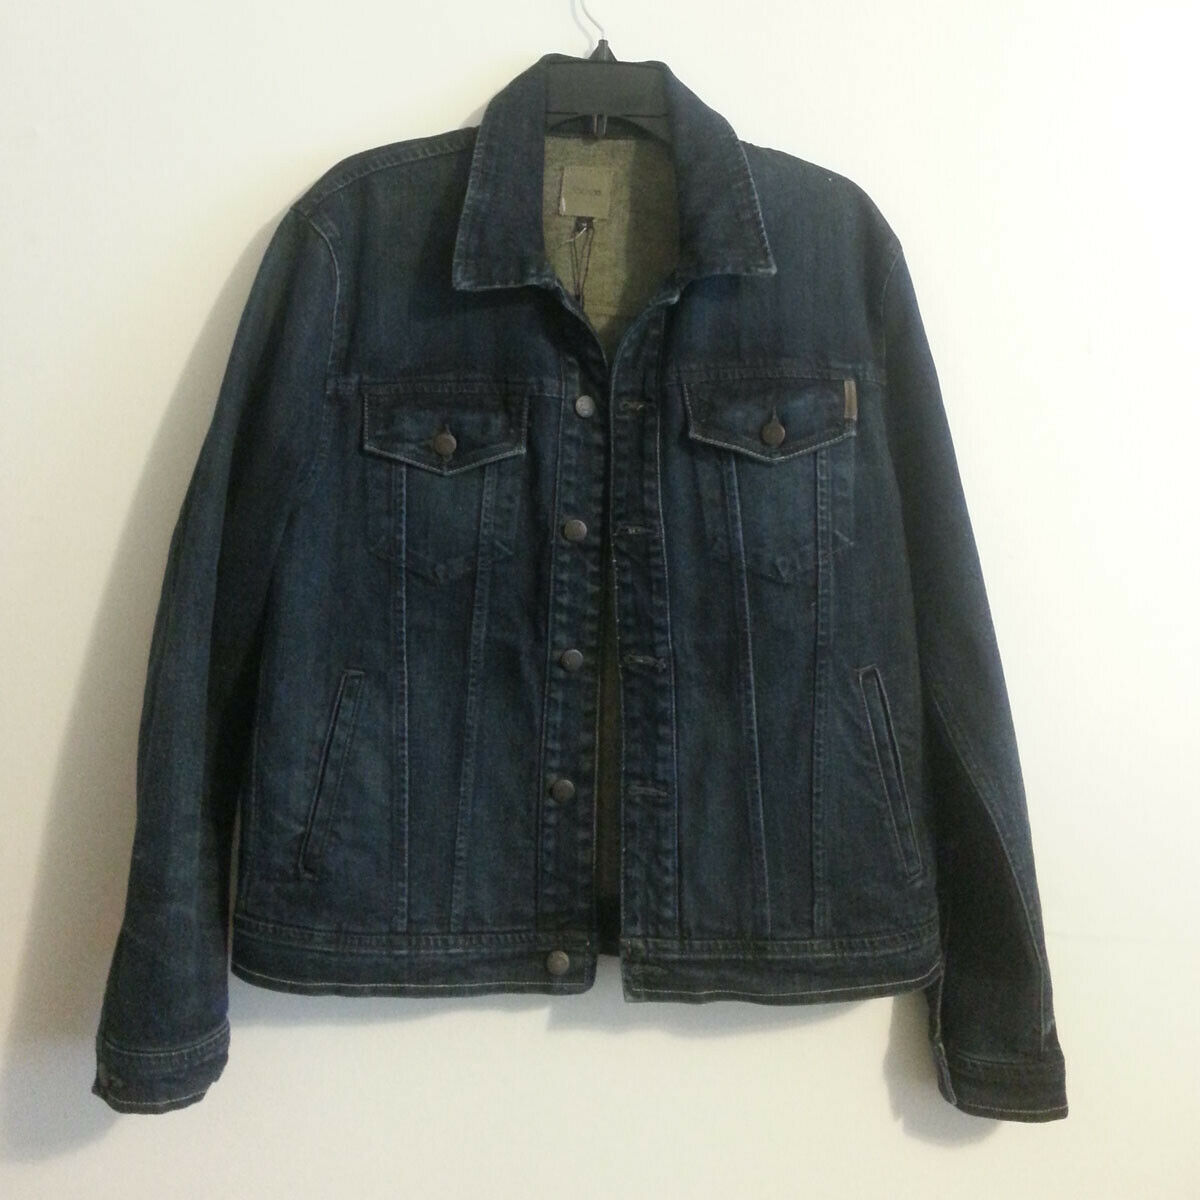 Sale  Good Price!  https://ebay.to/2KzfM5n  Joe's Jeans Men Size M Denim #jacket 2% Elastane 9 pic.twitter.com/NilpBaRyv4